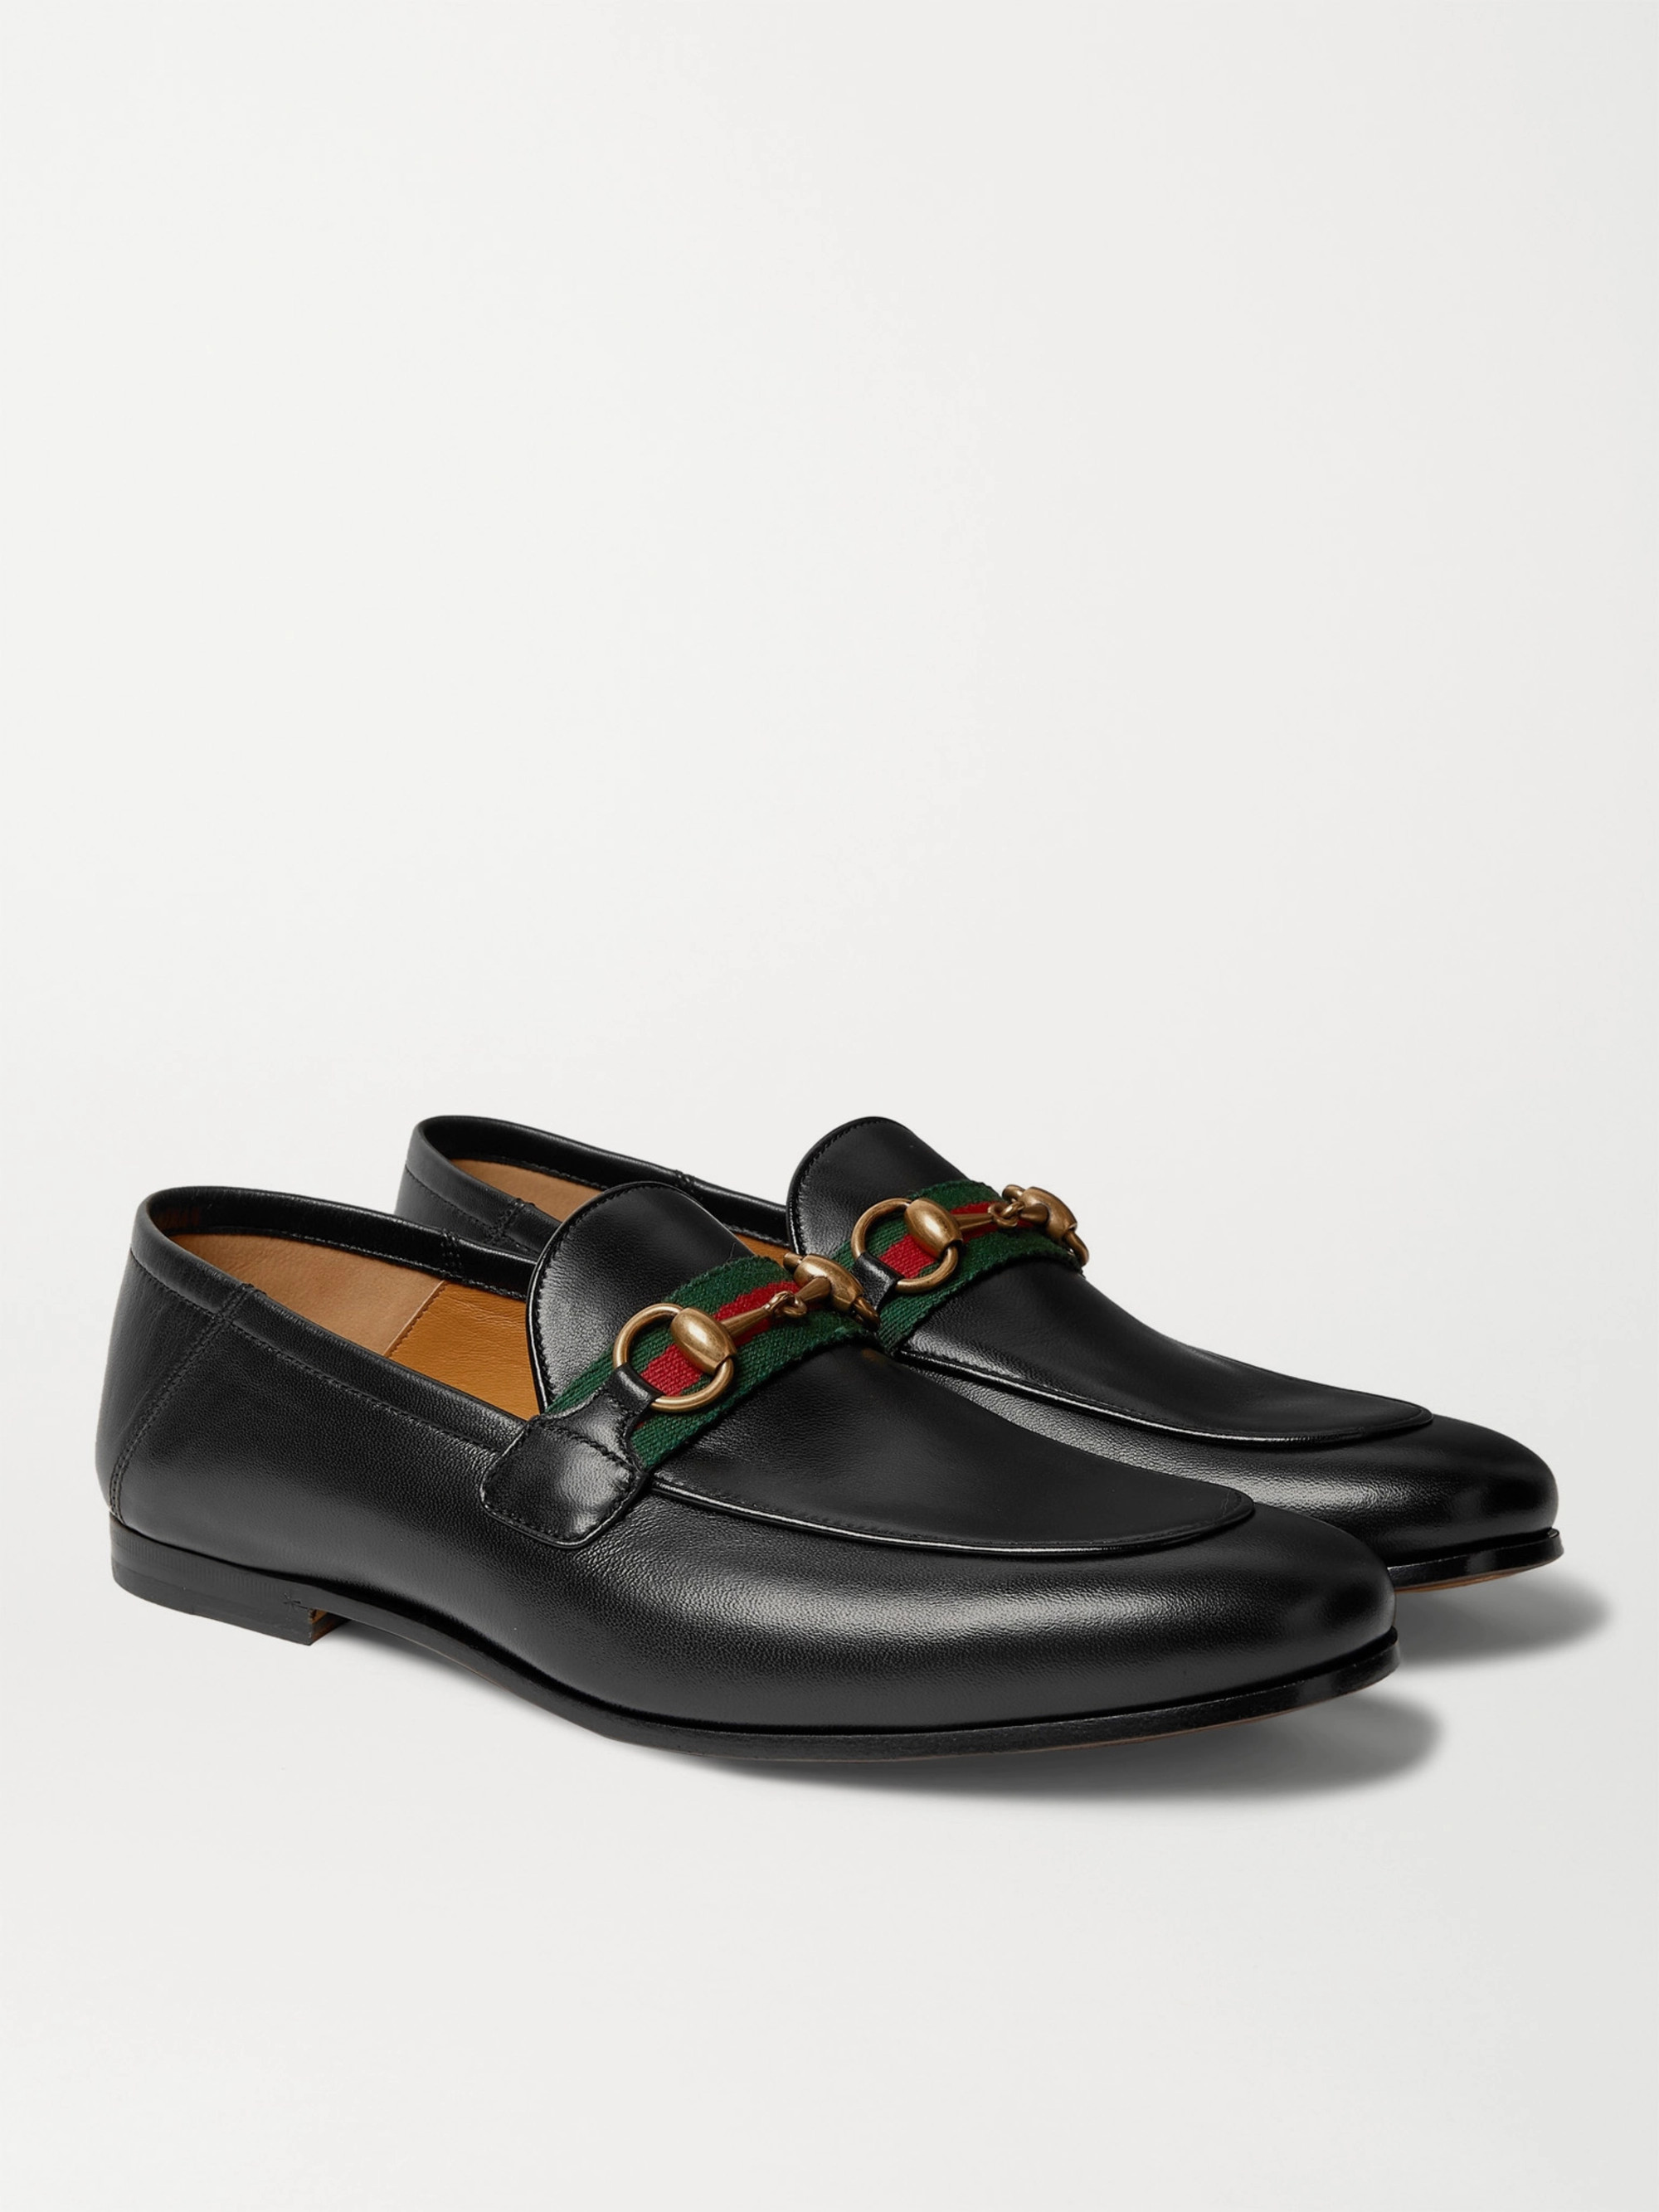 017a45498 Gucci Brixton Webbing-Trimmed Horsebit Collapsible-Heel Leather Loafers